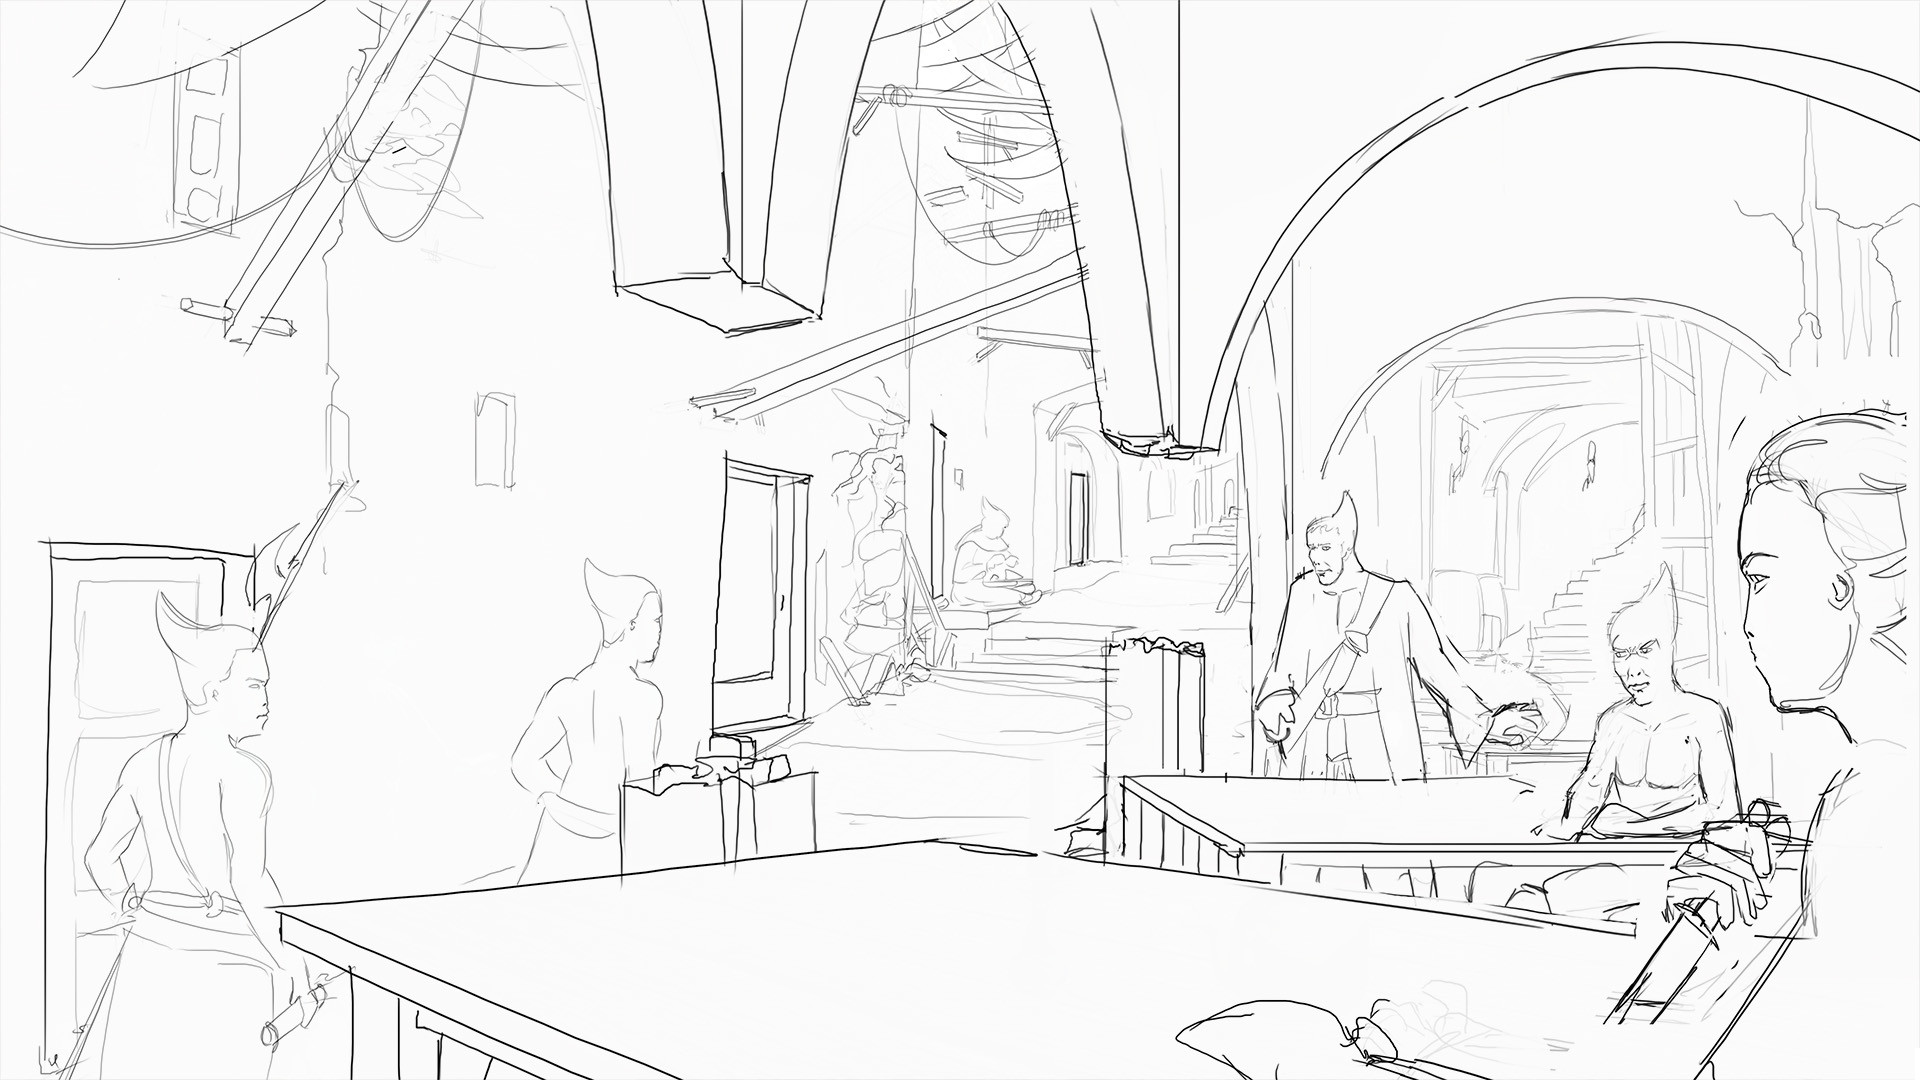 Fleshed out idea. Wanted to show the state of the environment a bit more, and less focus on interior.